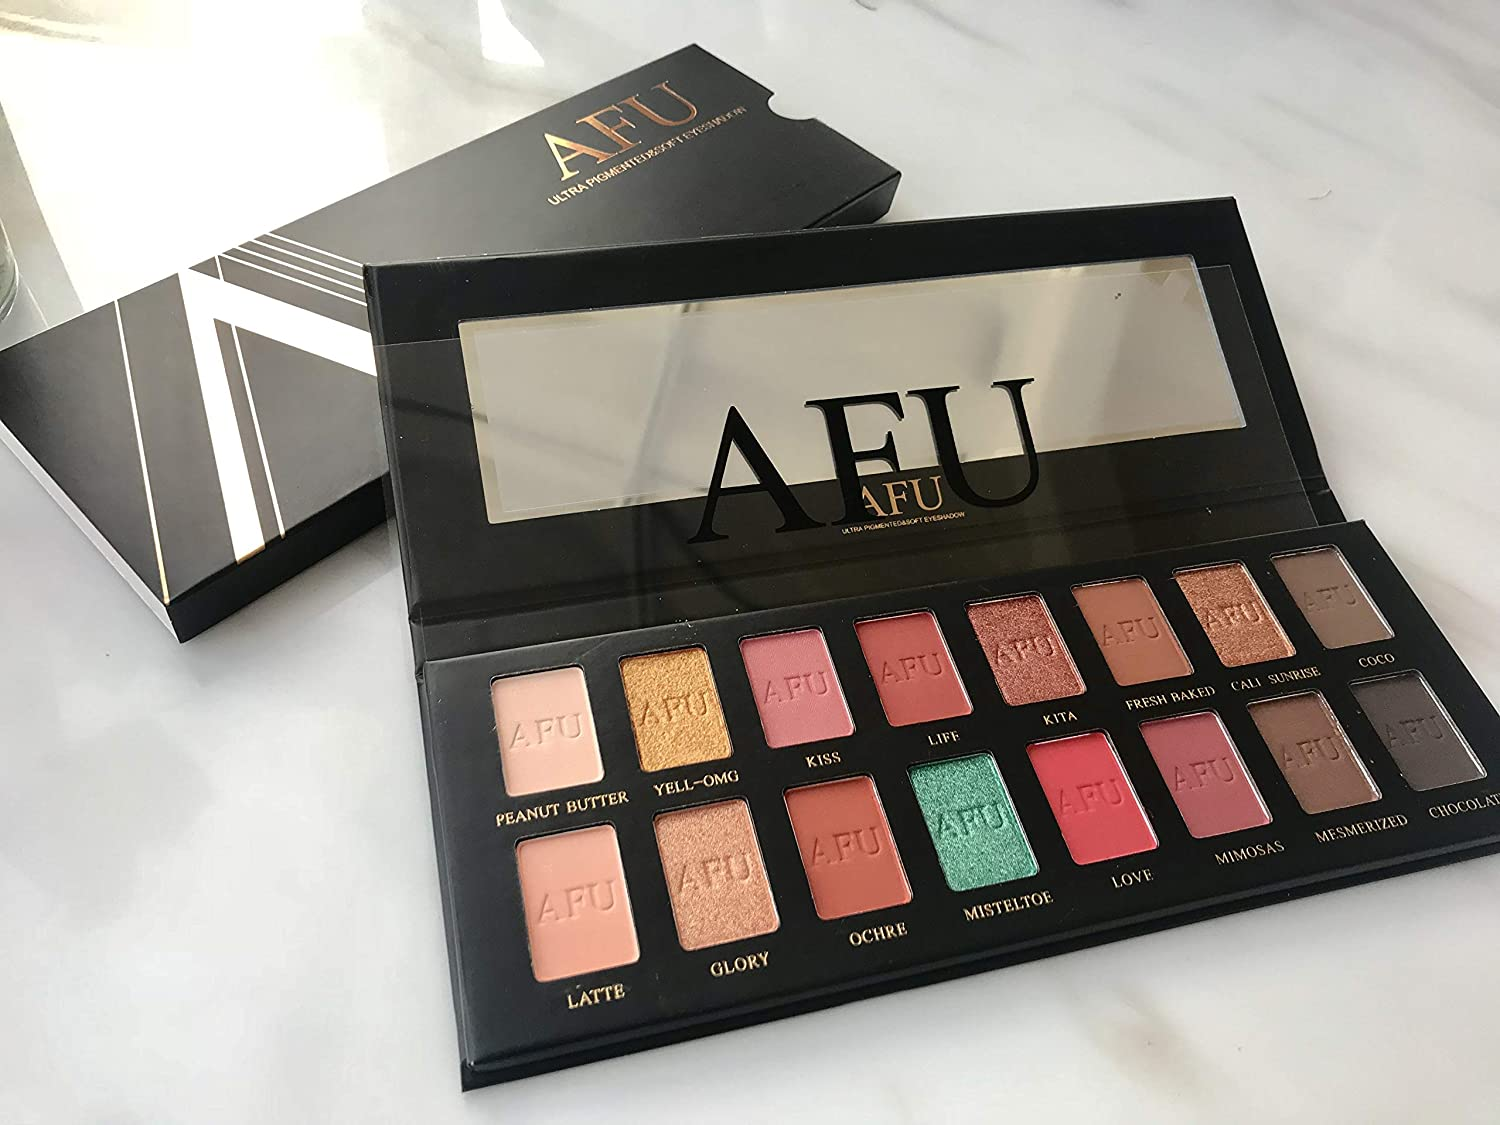 AFU Ultra Pigmented and Soft Eyeshadow Palette Matte + Shimmer 16 Colors Makeup Natural Bronze Neutral Smokey Blendable Waterproof Eye Shadows Cosmetic - E-15